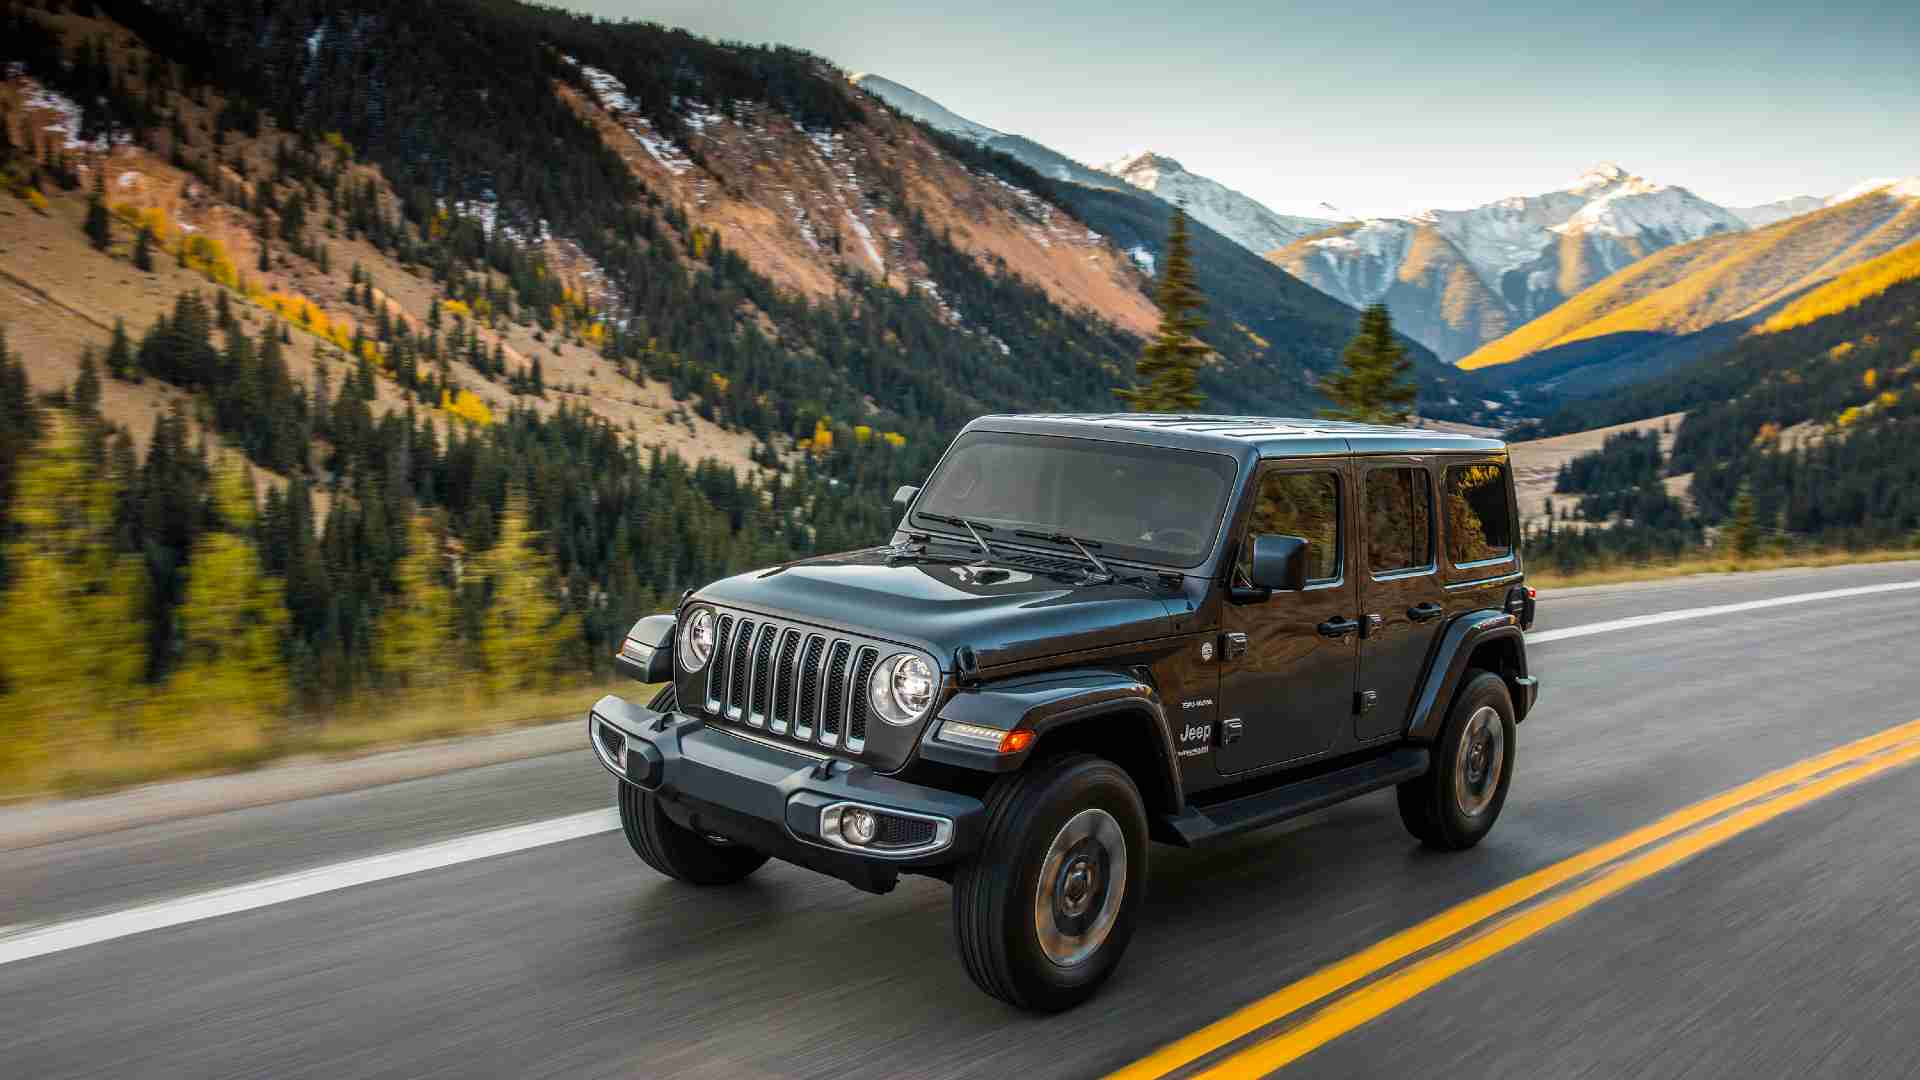 The Jeep Wrangler will continue to be offered in five-door 'Sahara' form. Image: Jeep